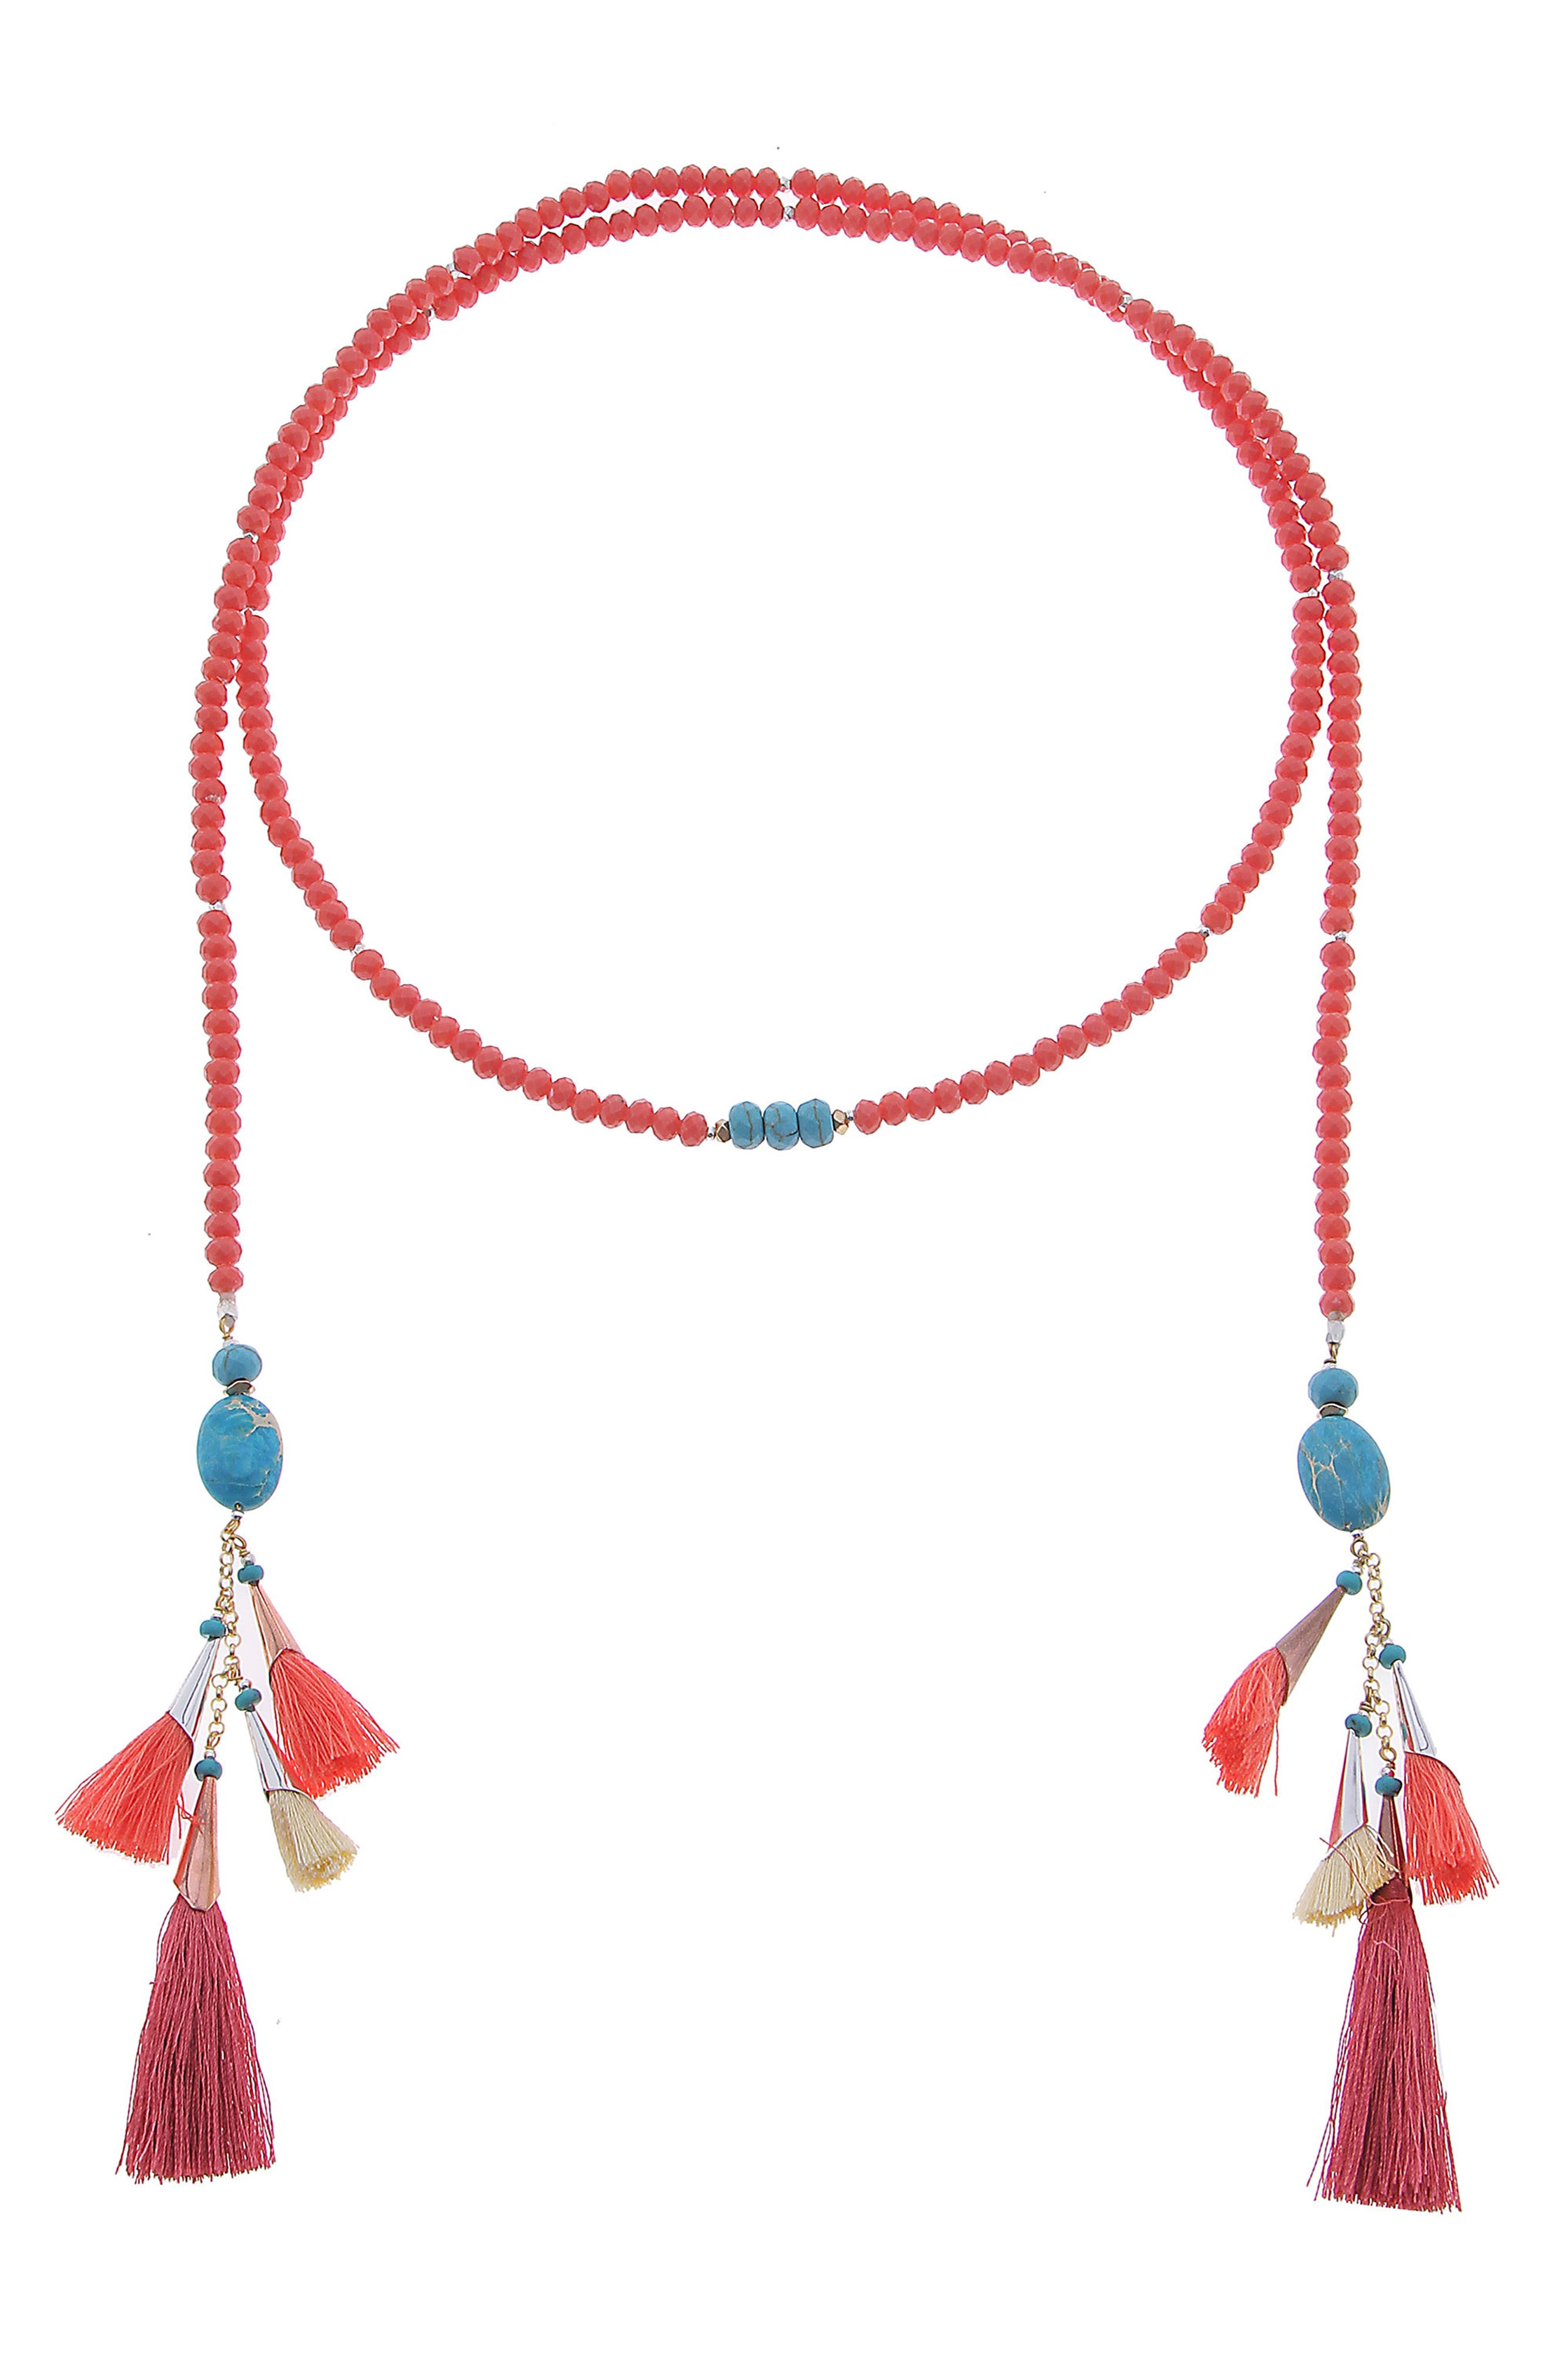 Lariat with Tassels,                         Main,                         color, ORANGE